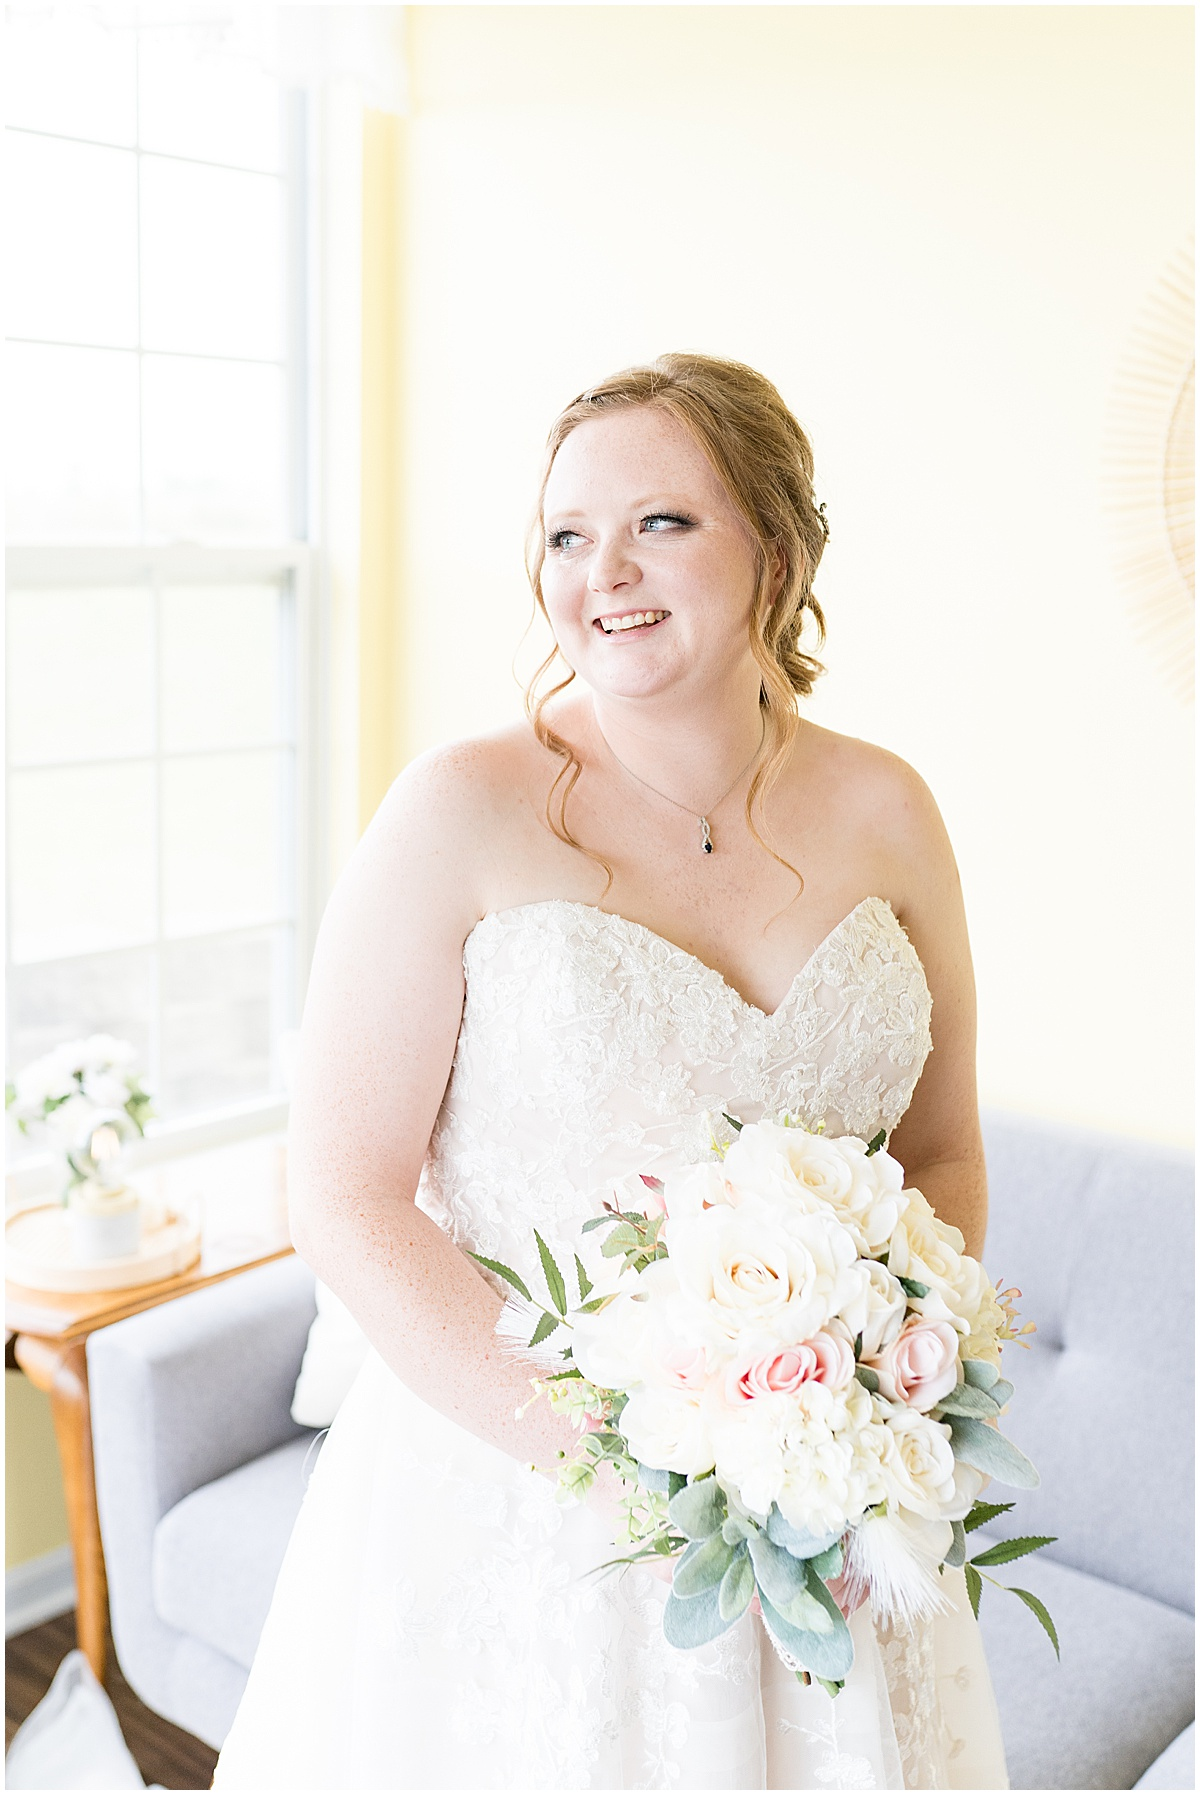 Bride before County Line Orchard Wedding in Hobart, Indiana